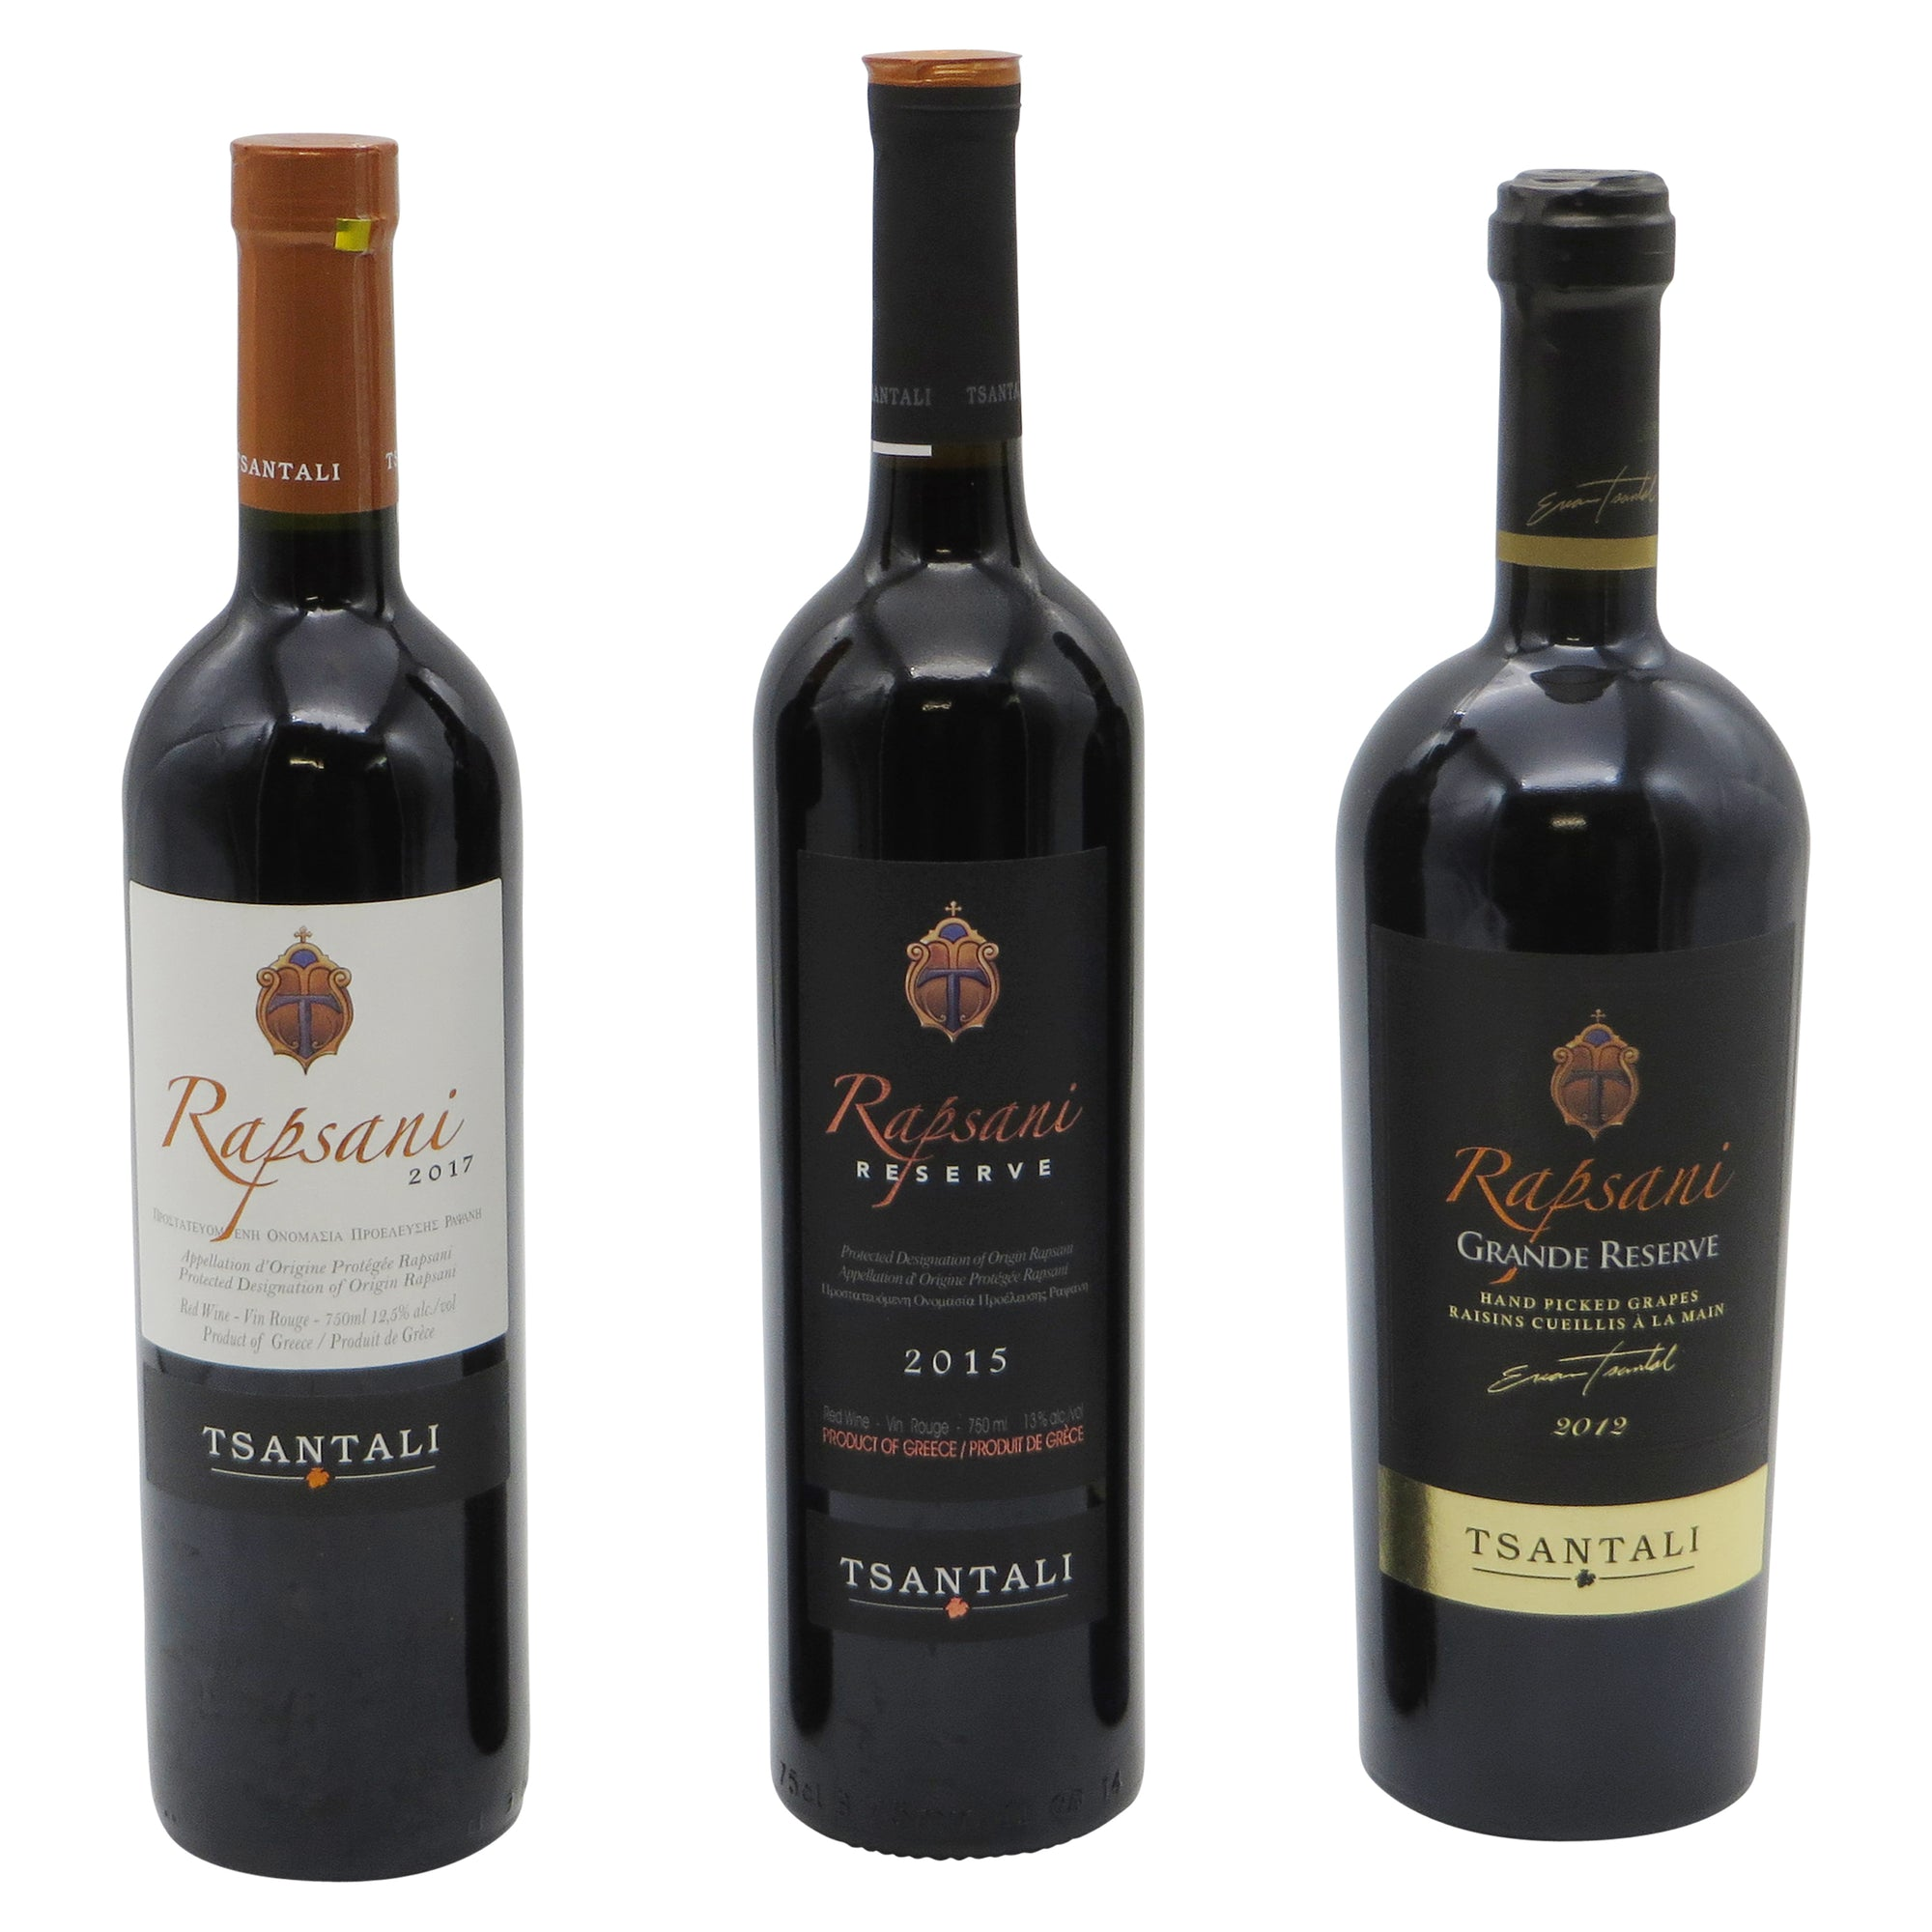 Rapsani tasting pack of 3 wines